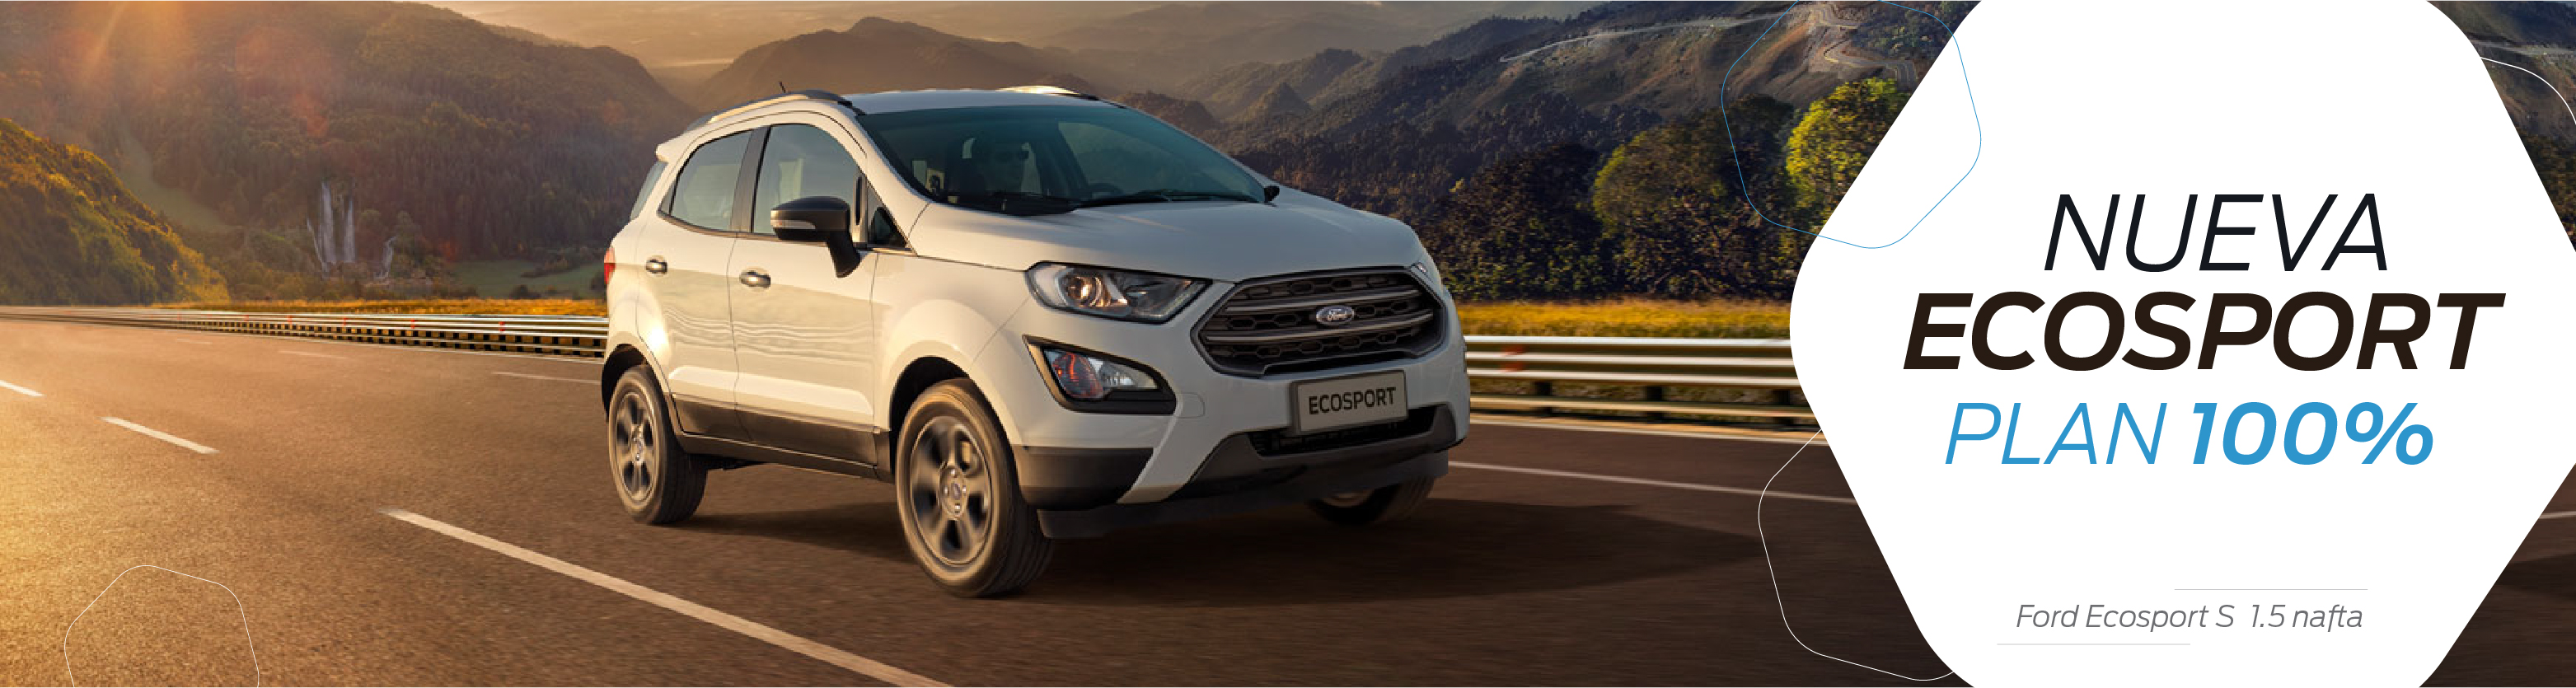 Plan Ovalo Ford